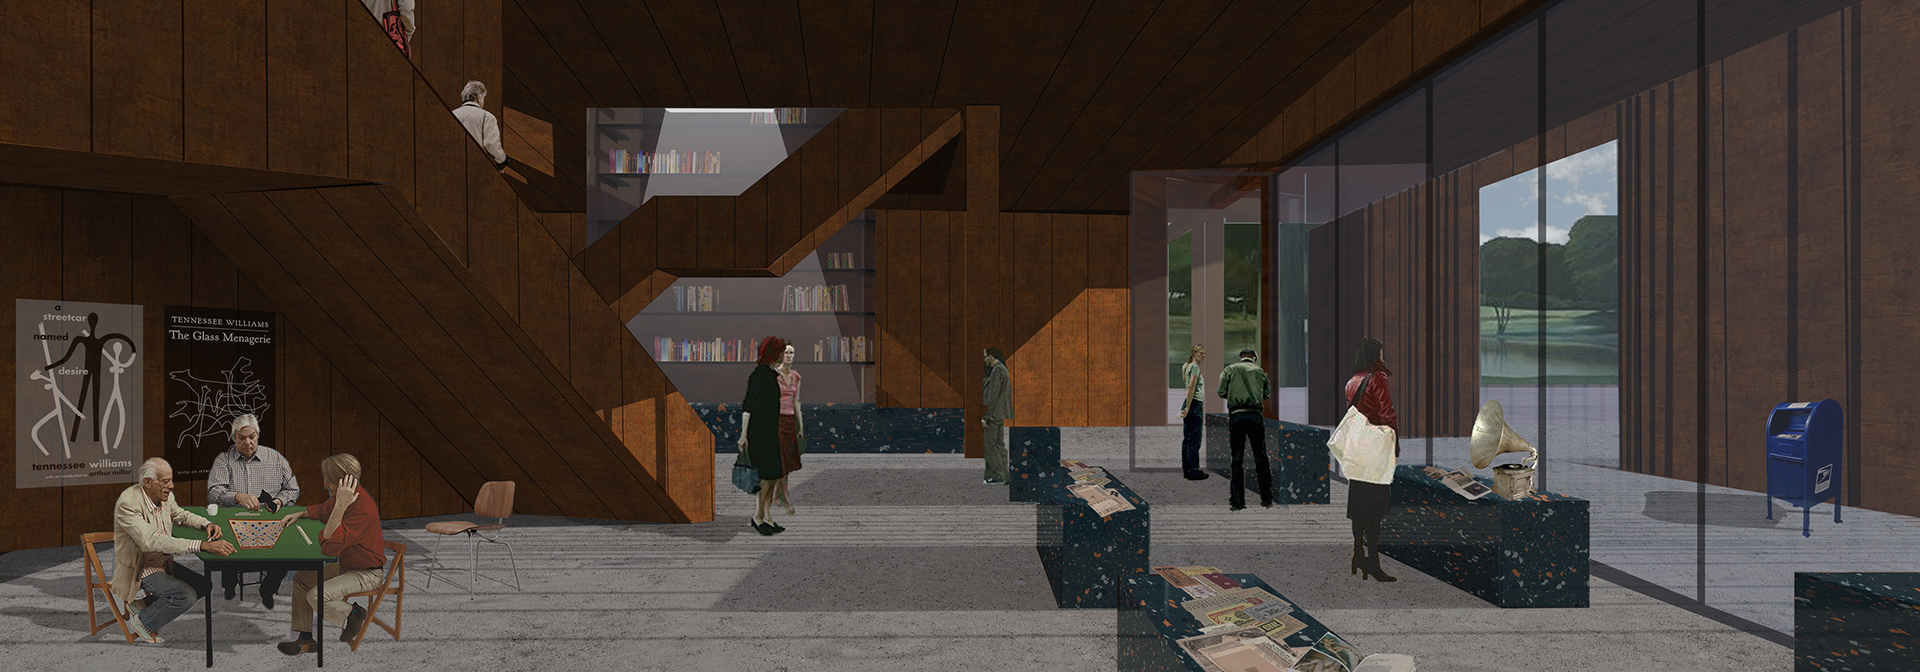 Interior perspective of a large modern, open room with high ceilings and multi-level staircases in the background